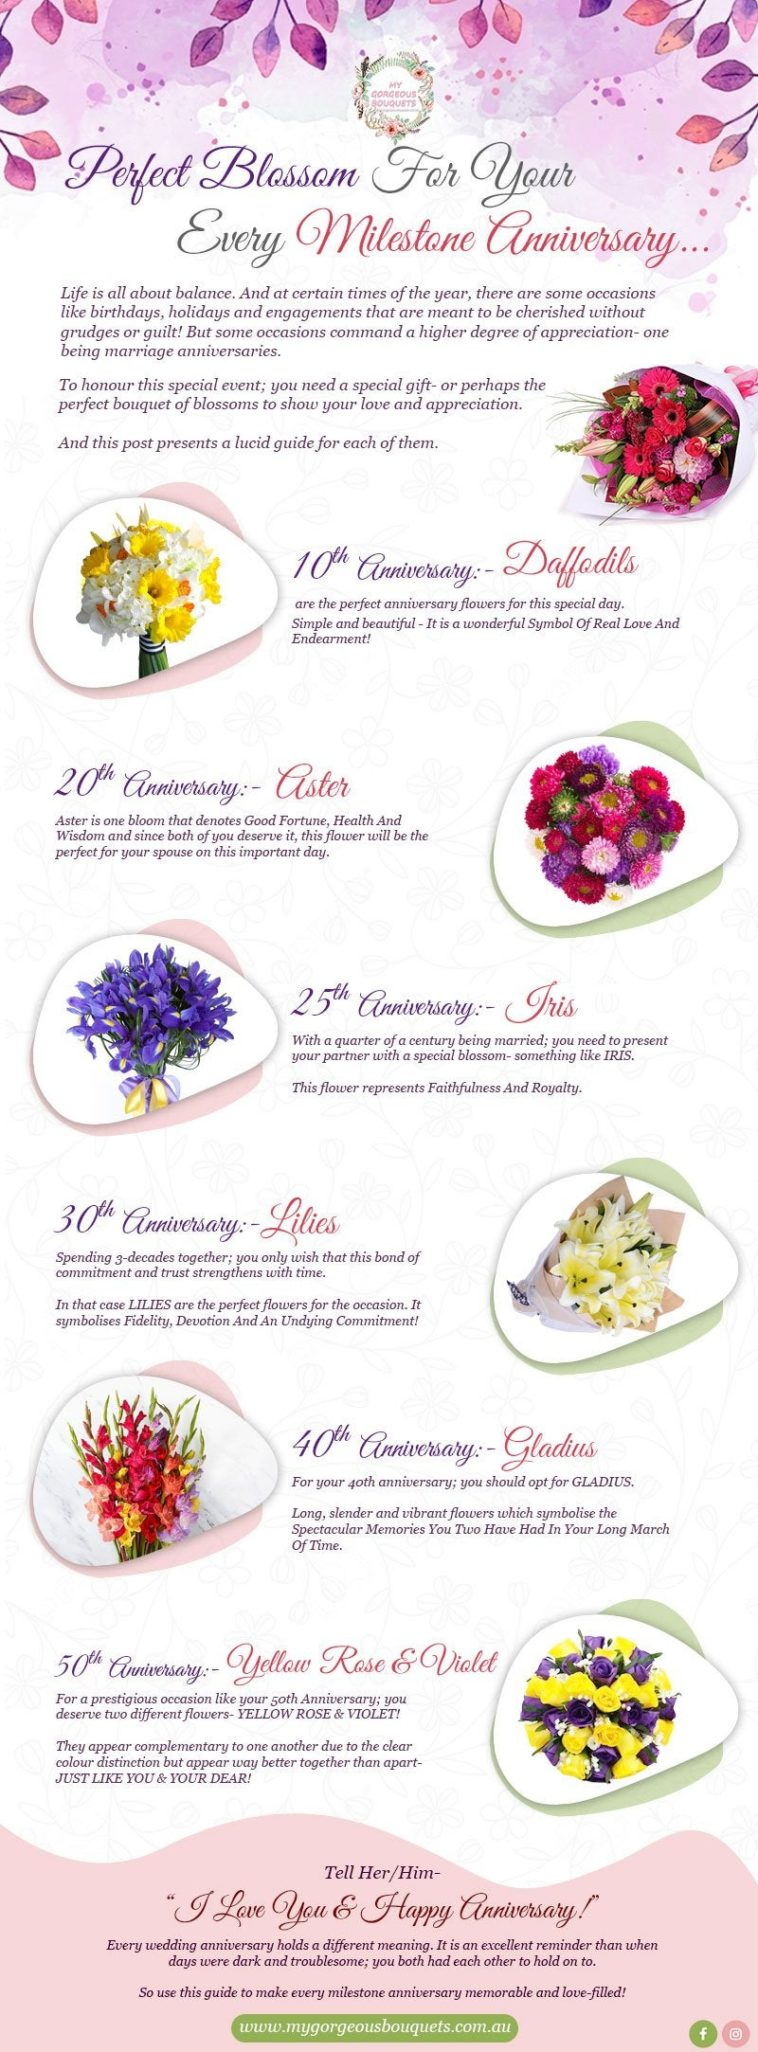 Perfect Blossom for Your Wedding Anniversary Milestones